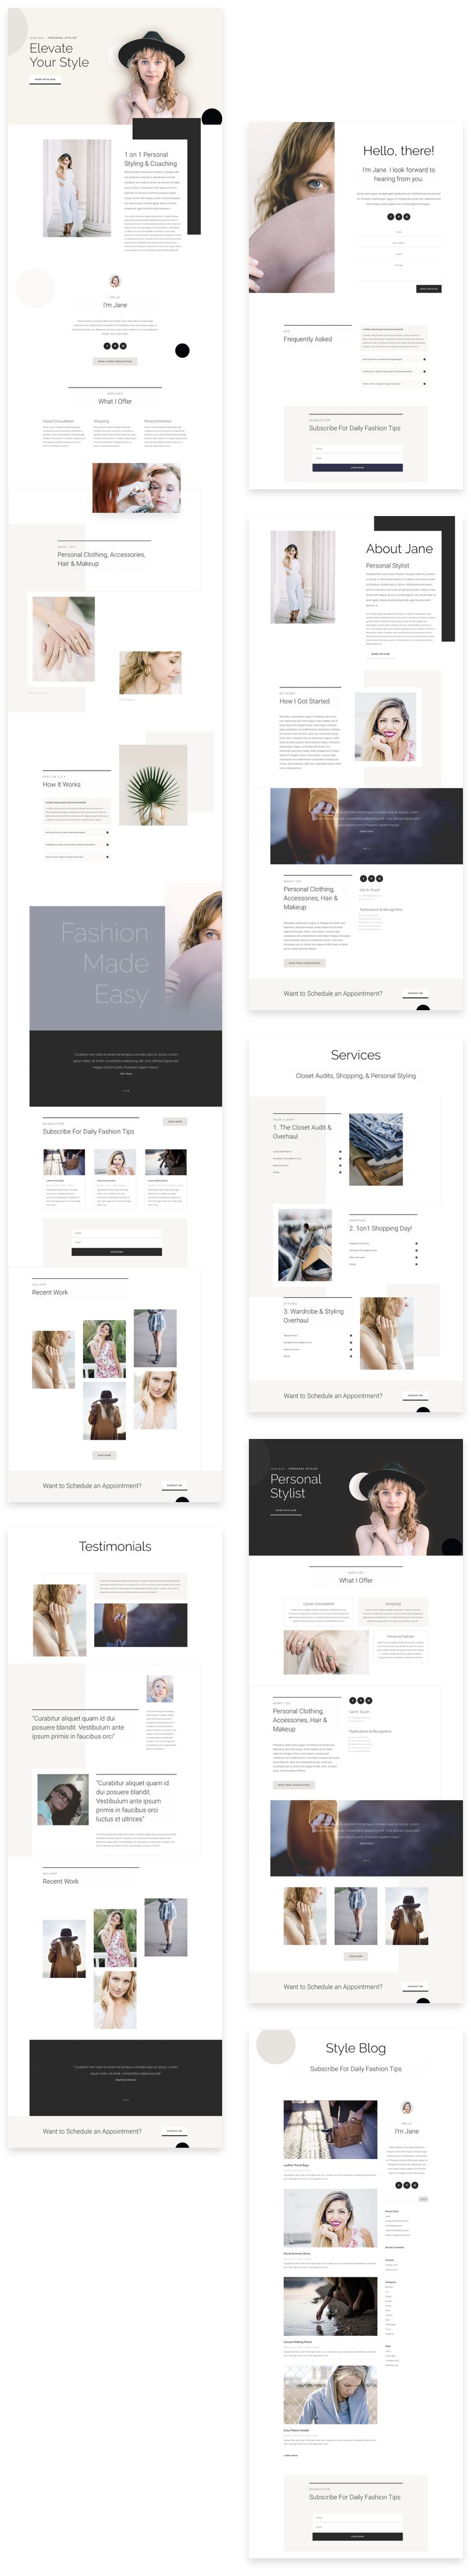 Personal Stylist Divi Layout Pack